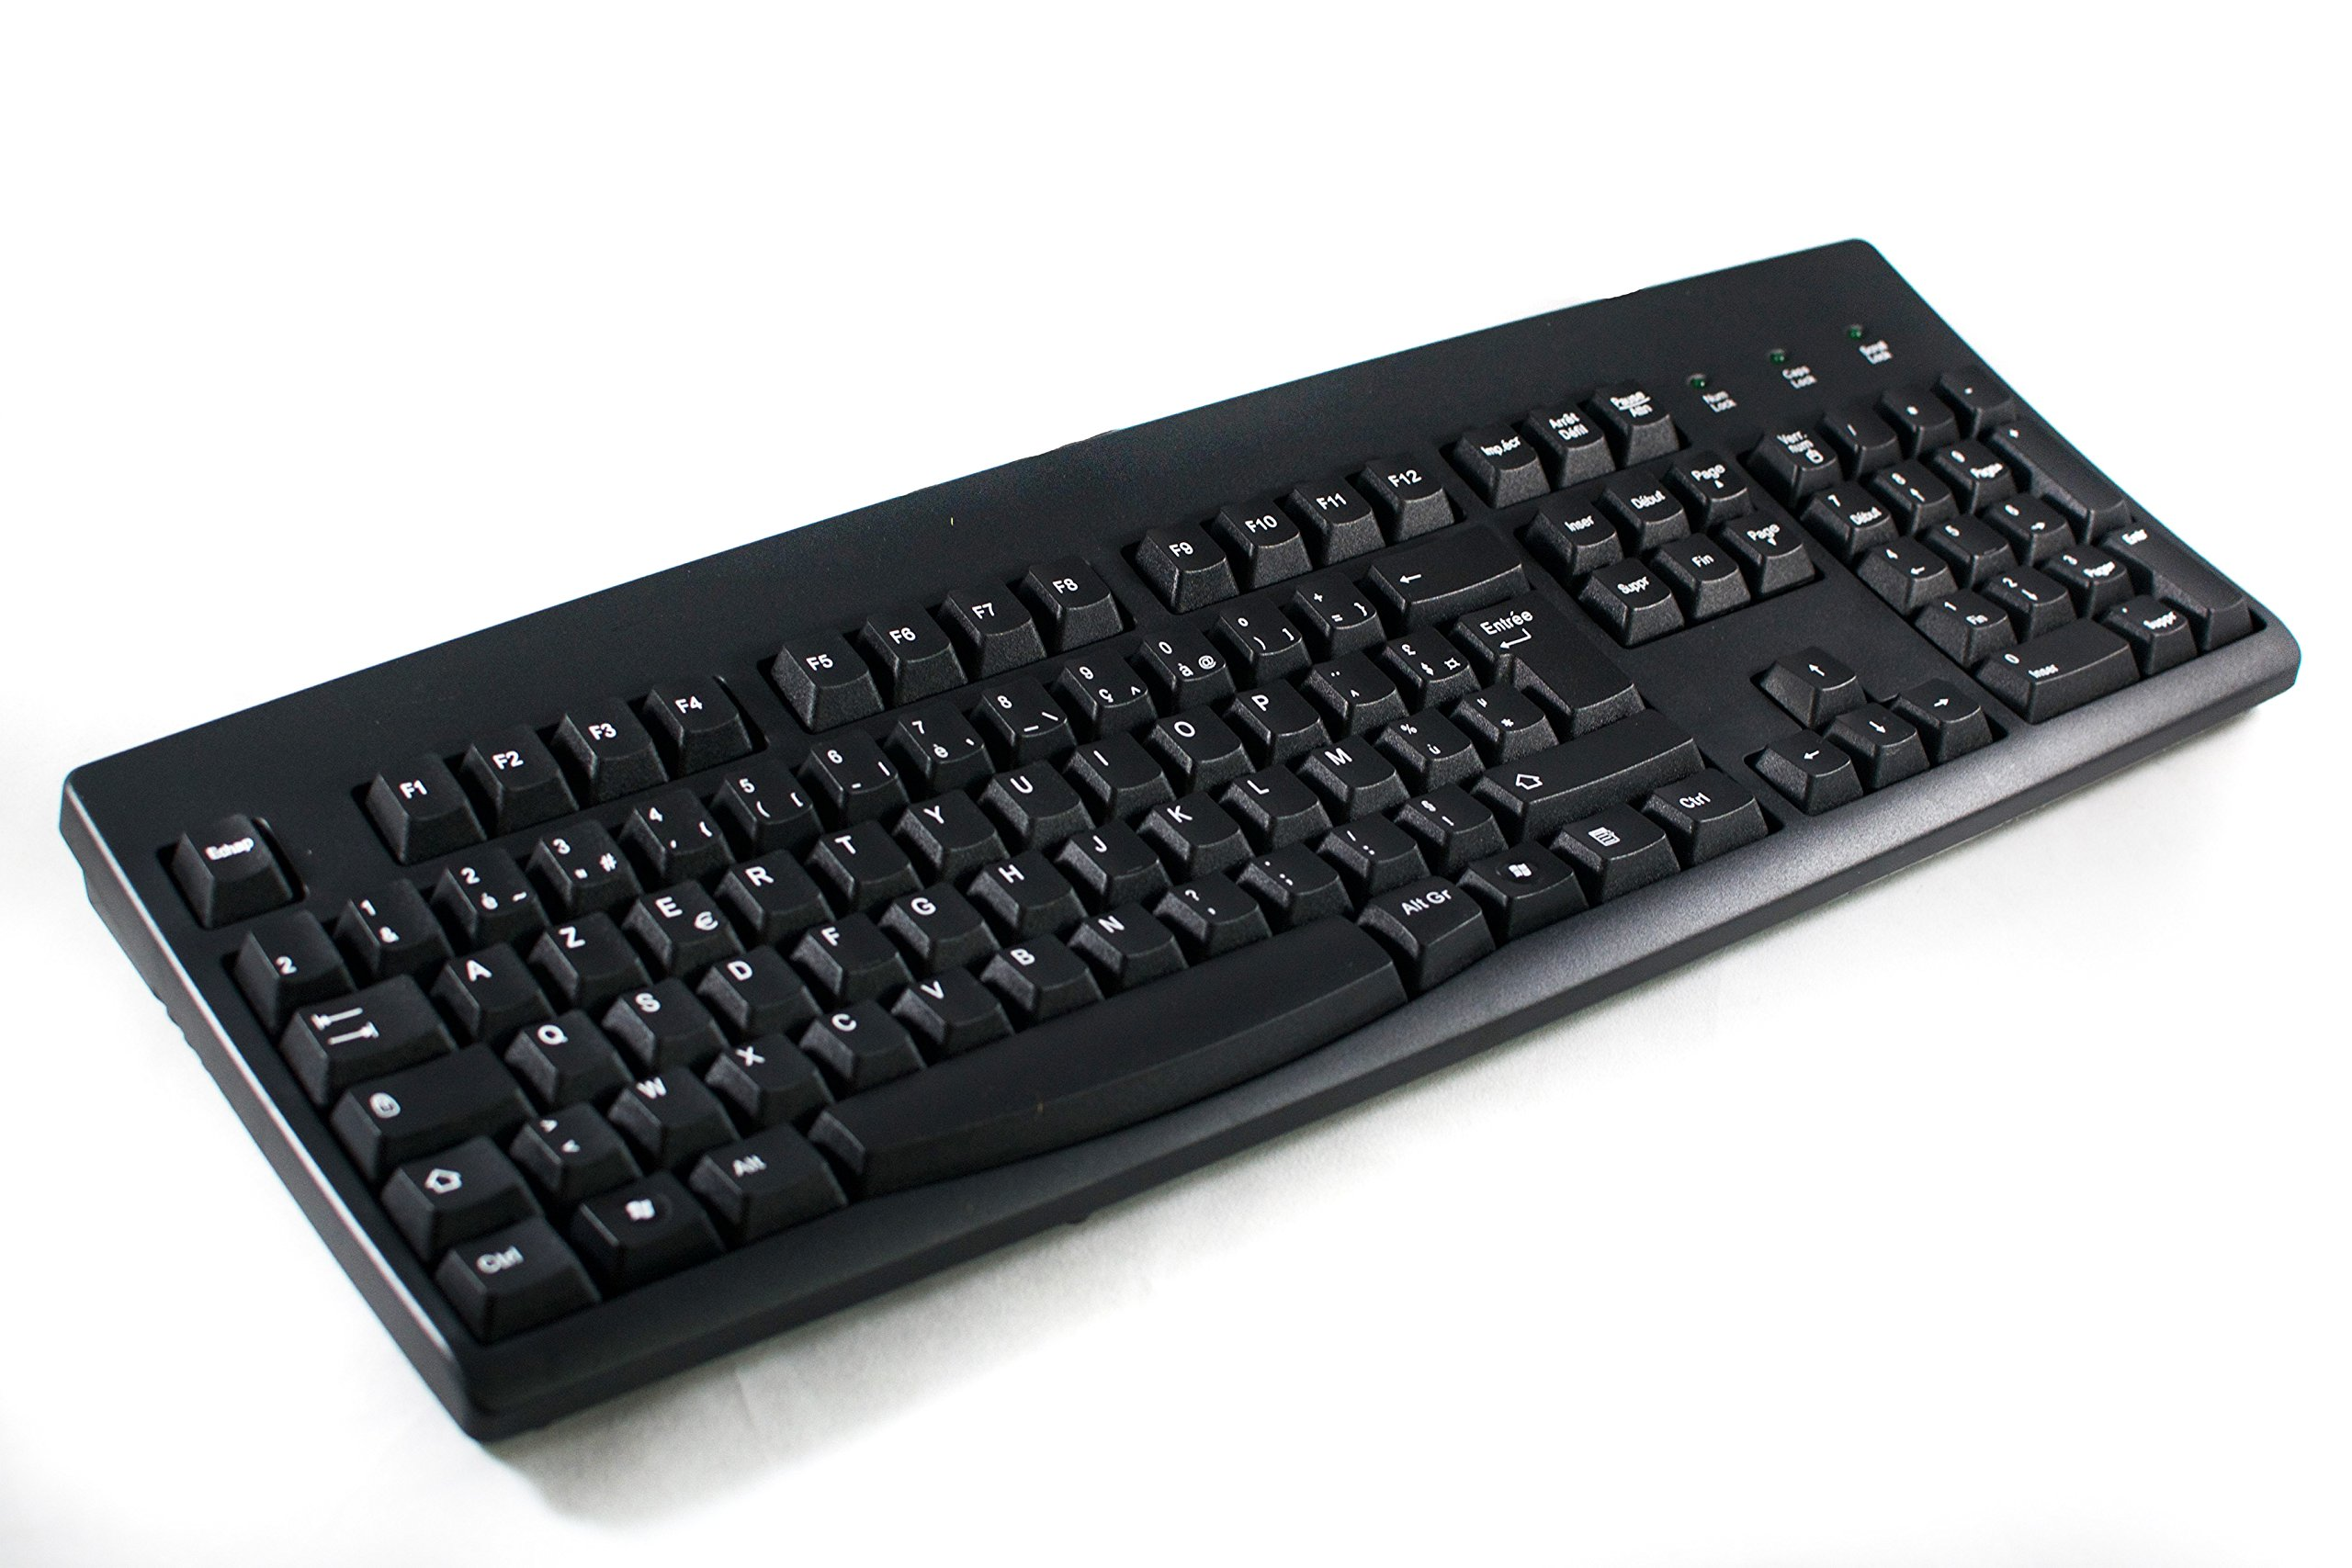 French European Language Keyboard Black Usb Windows Logitech K120 Original Computers Accessories